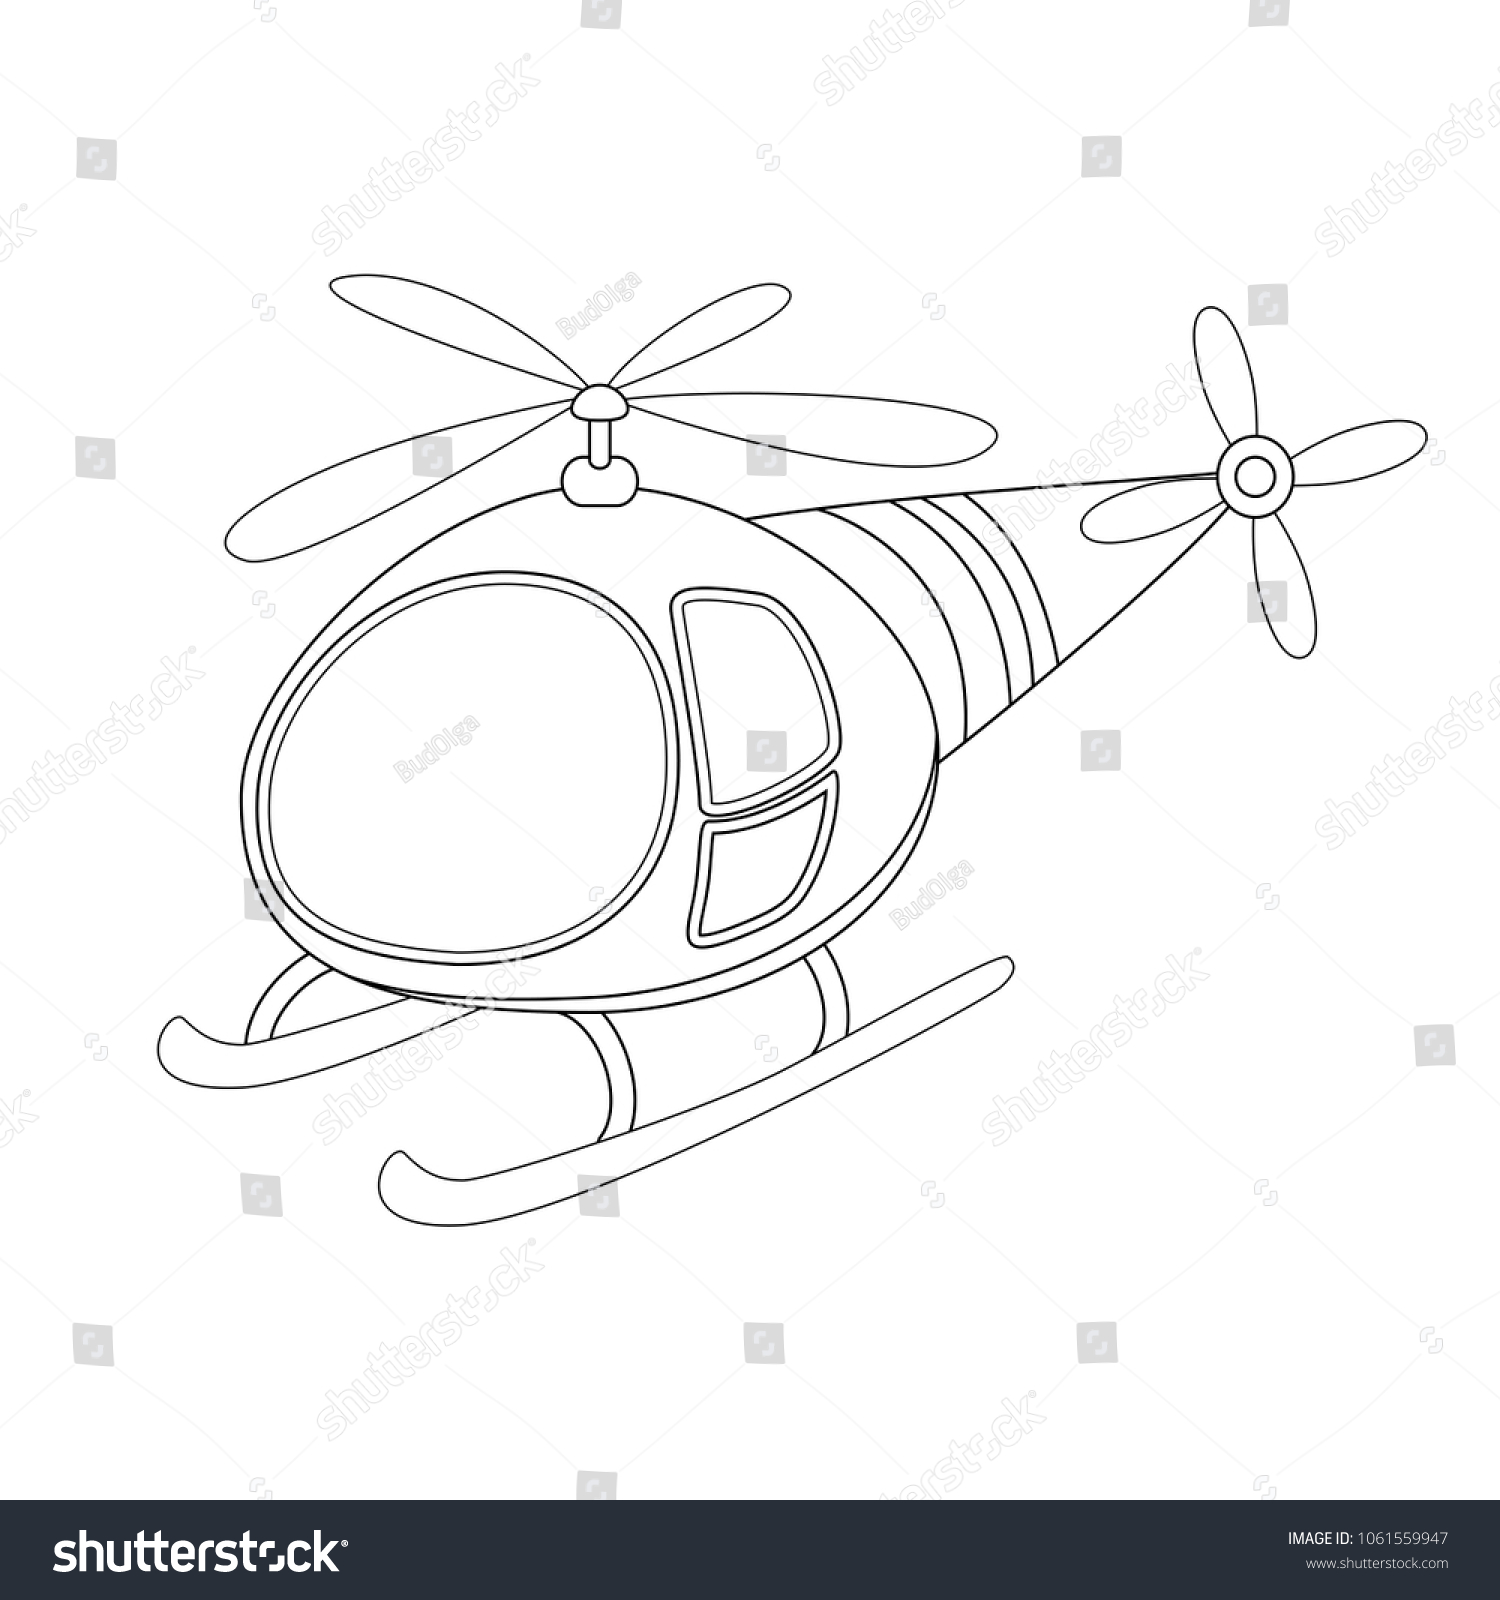 stock vector colorless funny cartoon helicopter vector illustration coloring page preschool education